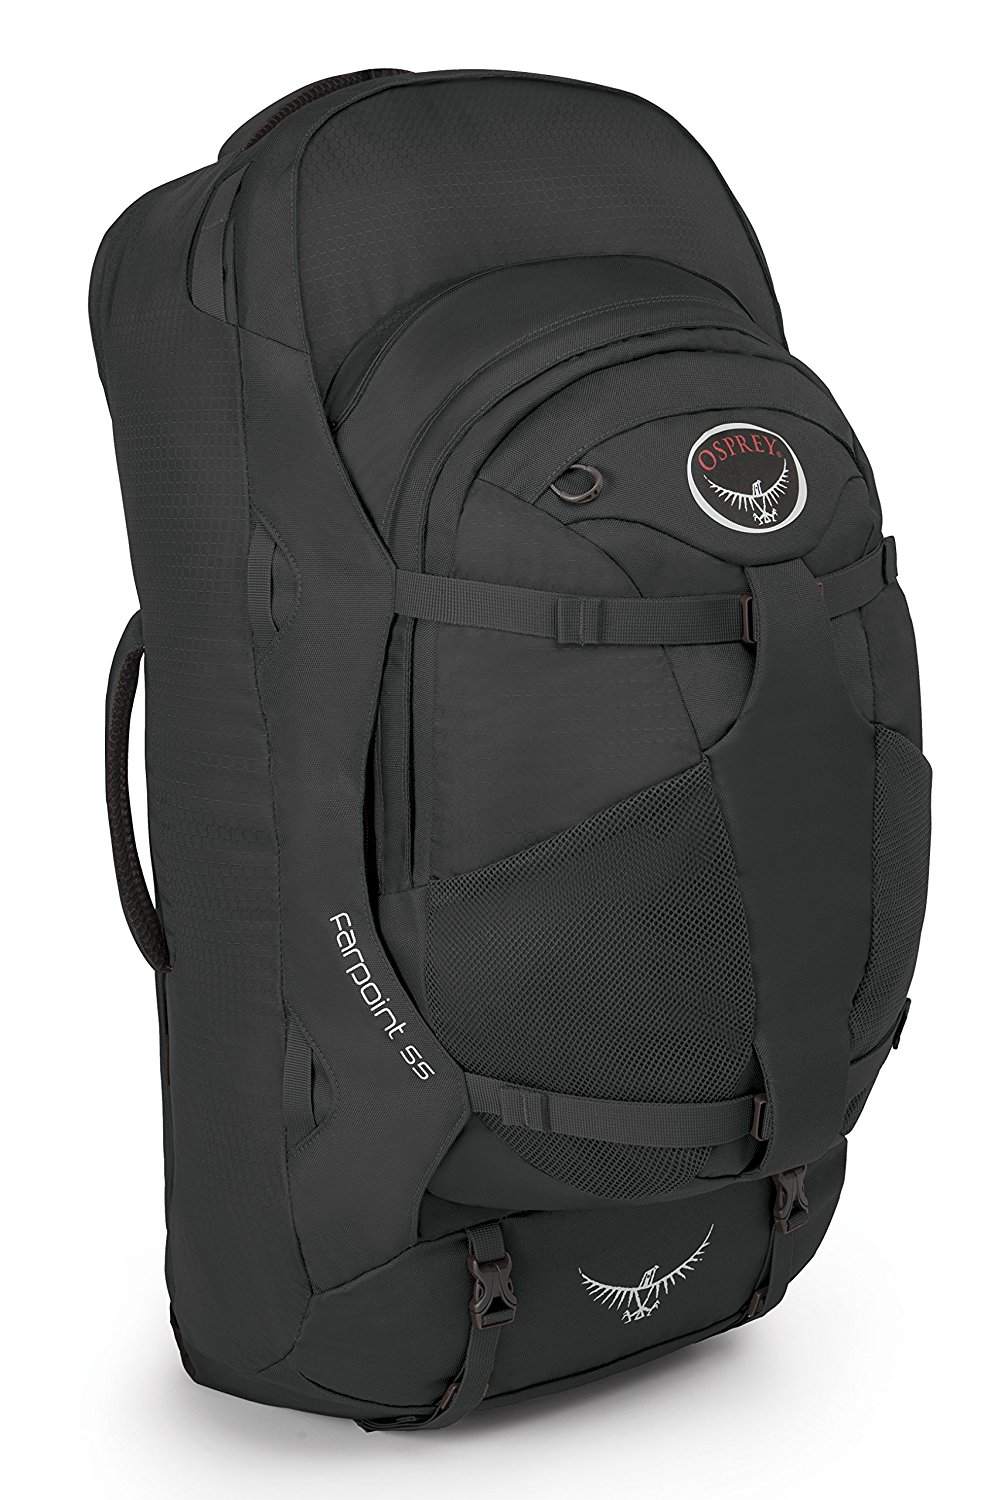 19 heavy duty backpacks